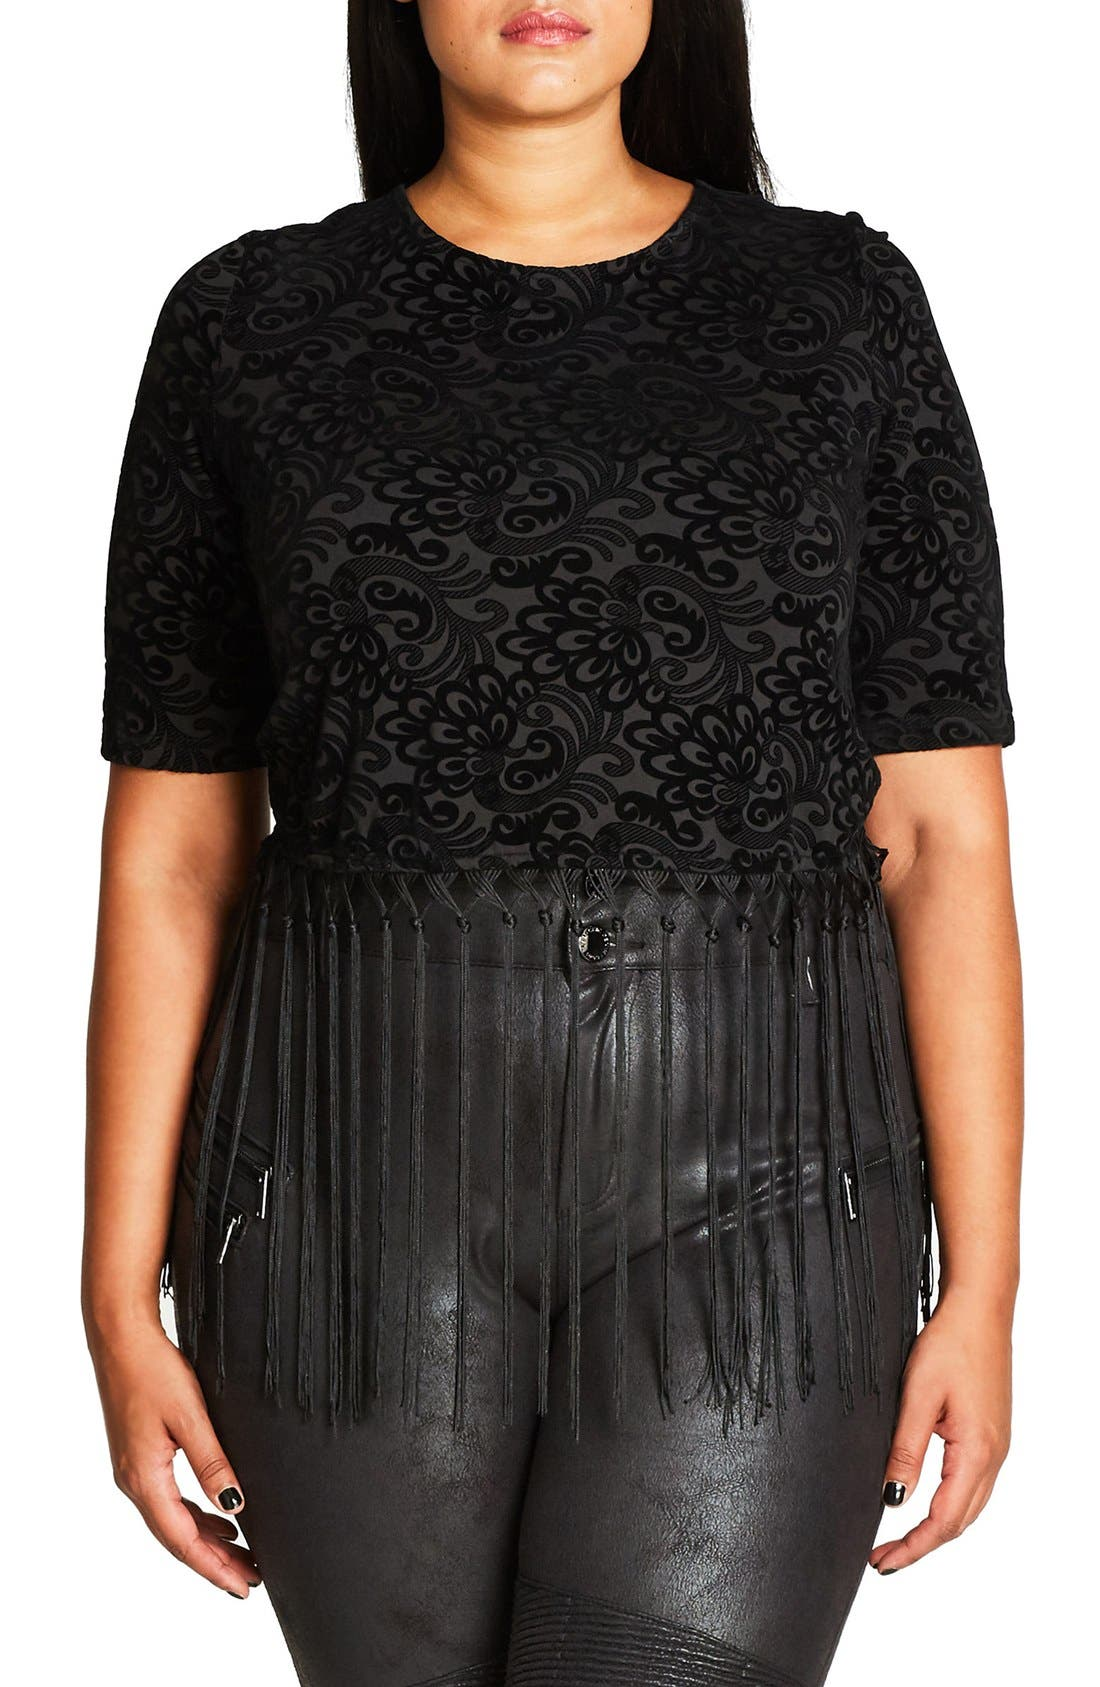 Alternate Image 1 Selected - City Chic Fringed Velour Burnout Crop Top (Plus Size)